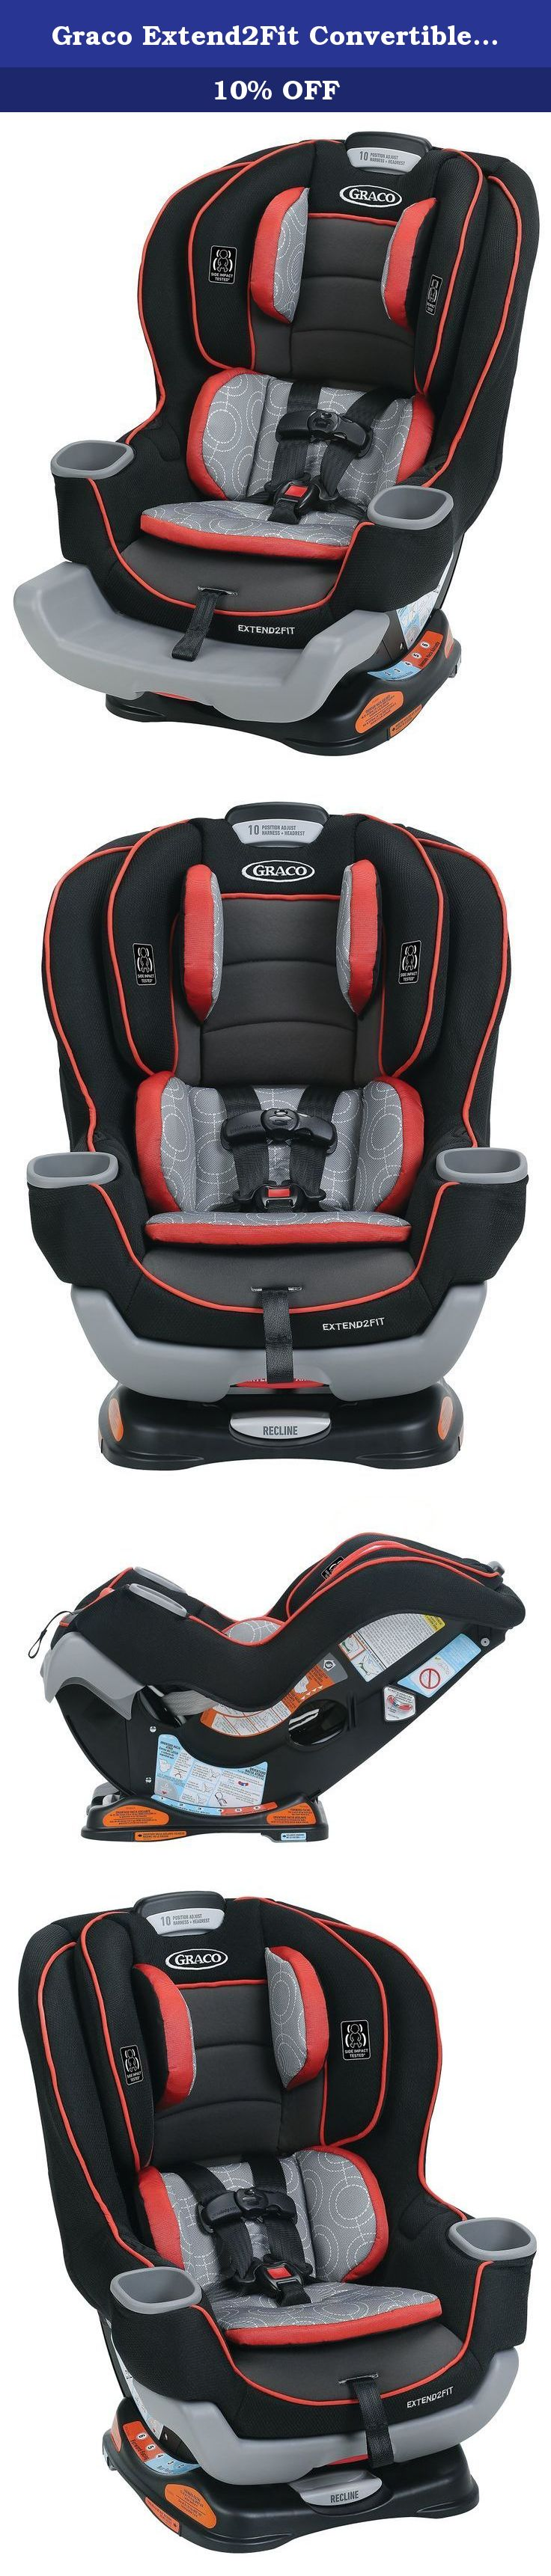 Graco Extend2Fit Convertible Car Seat Solar The American Academy Of Pediatrics Recommends Children Ride